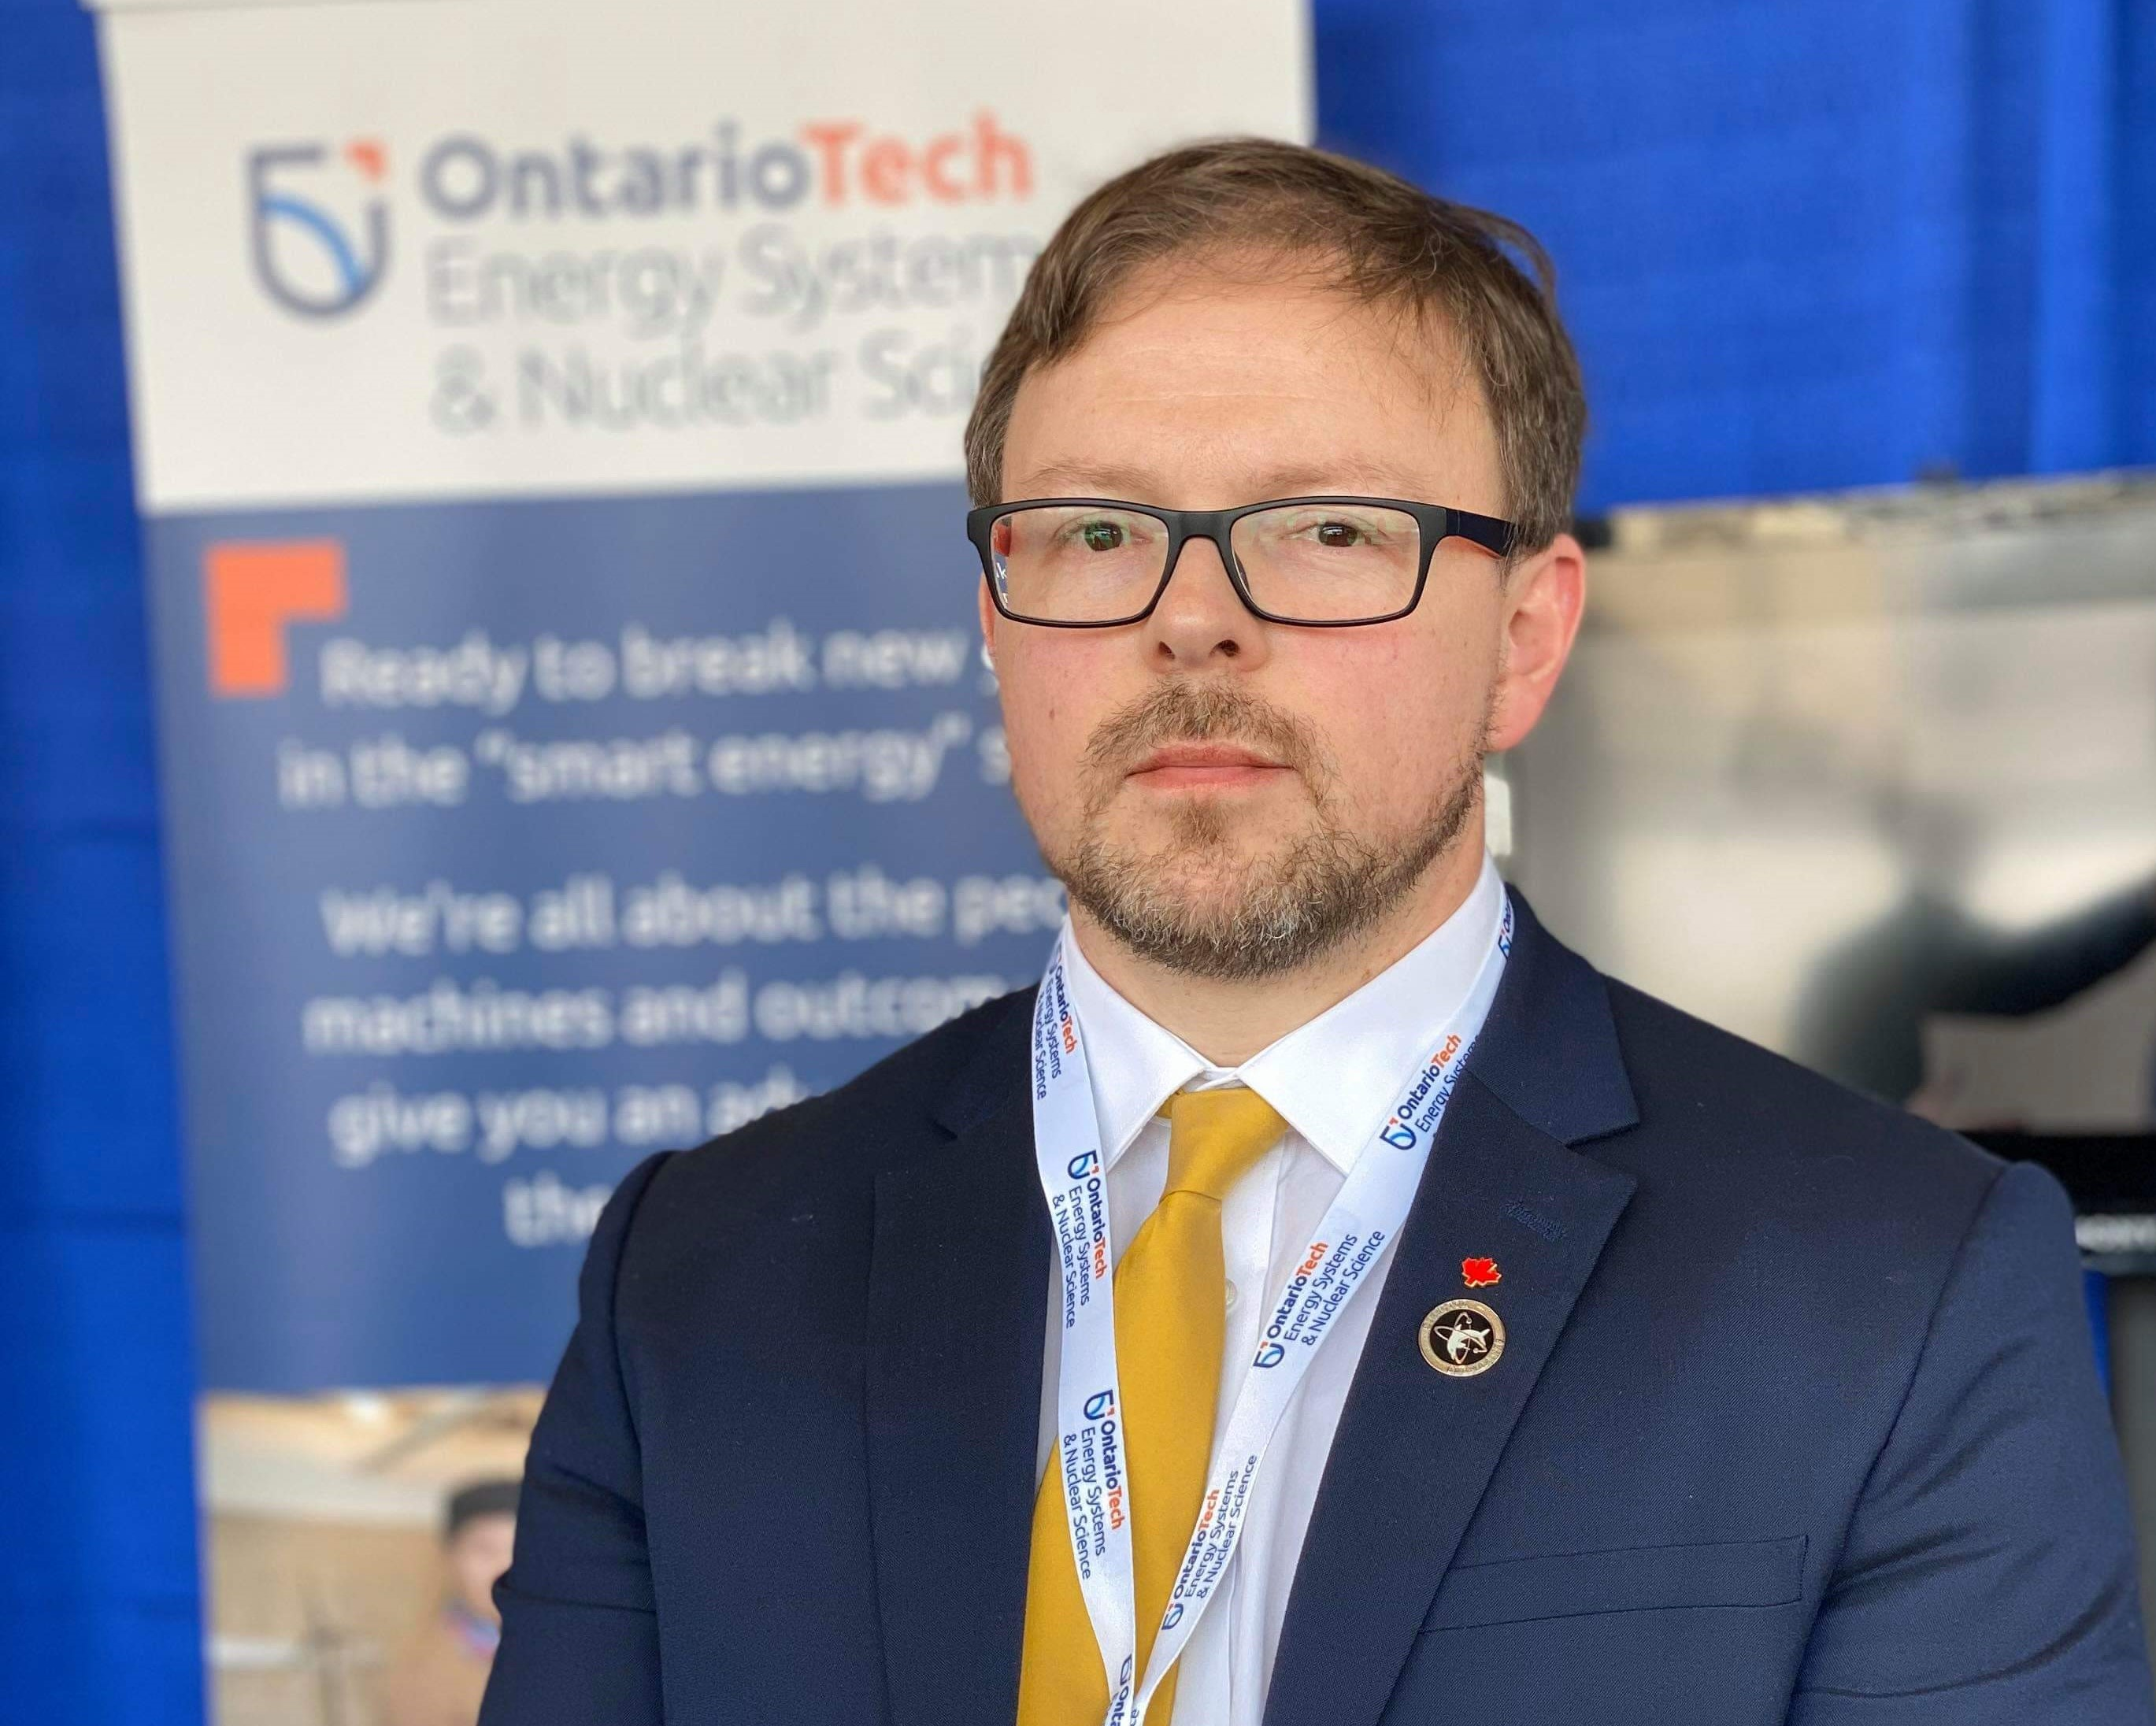 Dr. Kirk Atkinson, Director of the Centre for Small Modular Reactors, Associate Professor and Industrial Research Chair in Faculty of Energy Systems and Nuclear Science at Ontario Tech University.